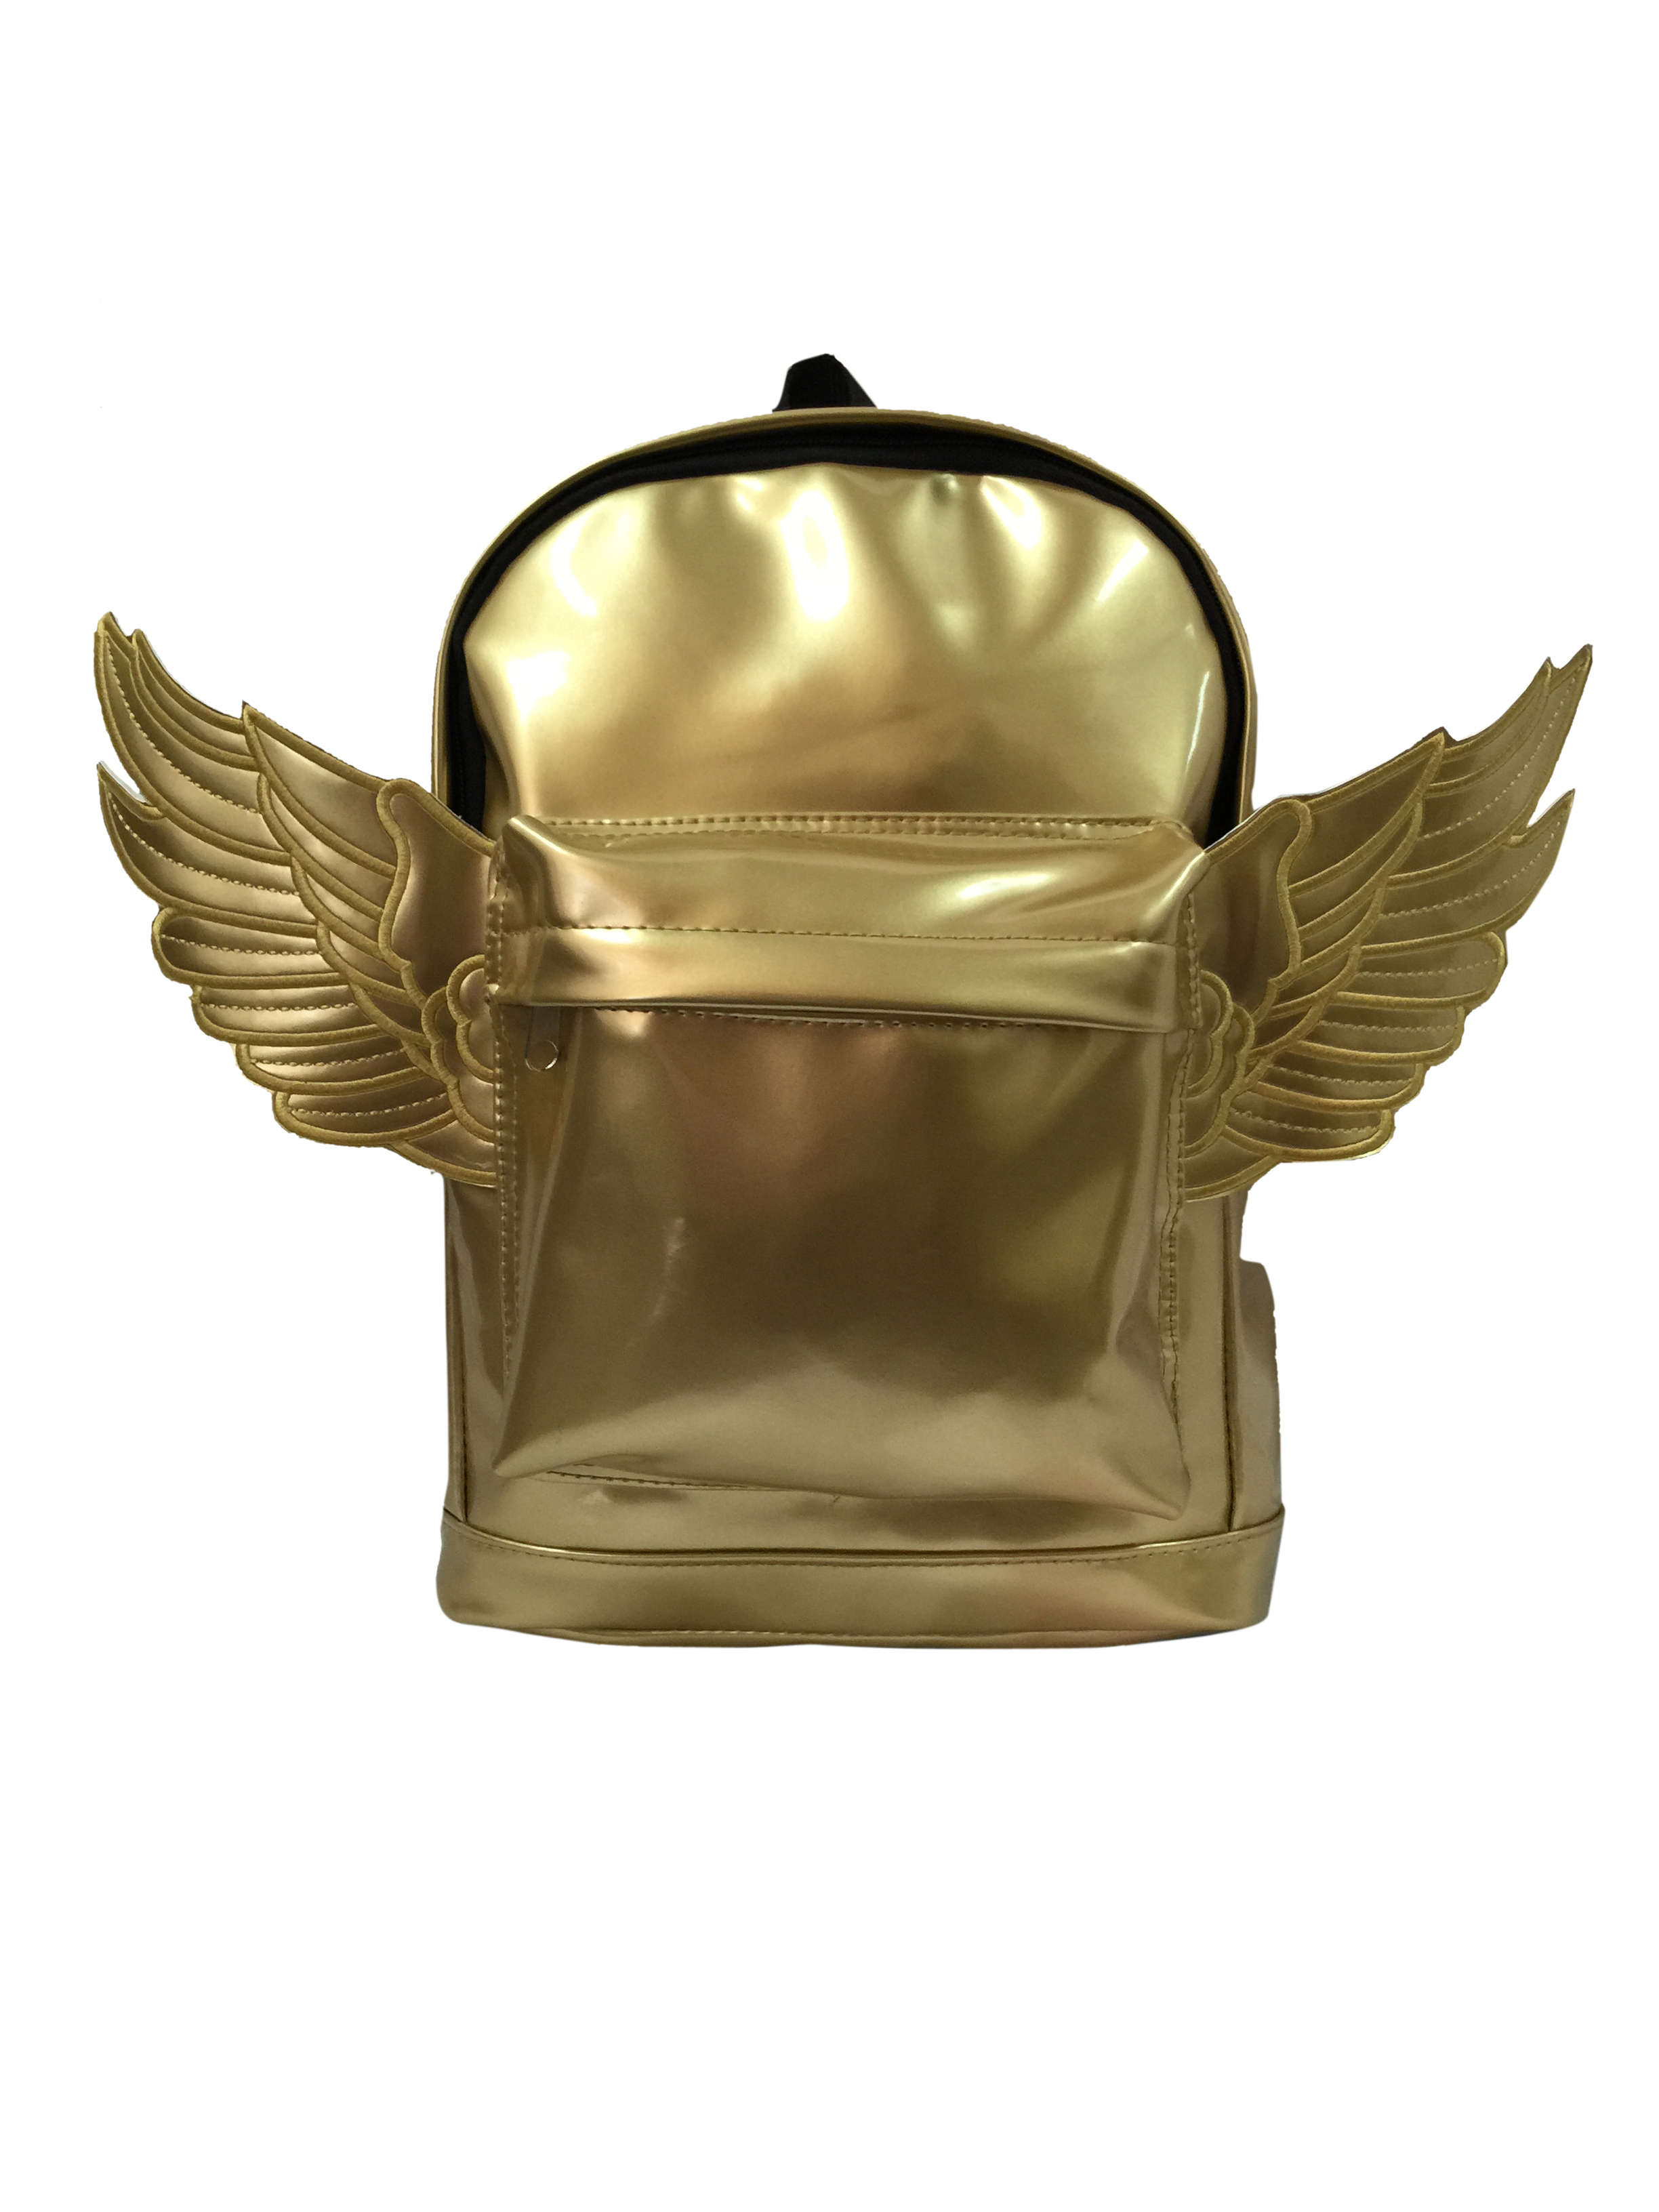 Kids Backpack Woman Mini Backpack Daypack Bag Lady Purse With Angel Wings